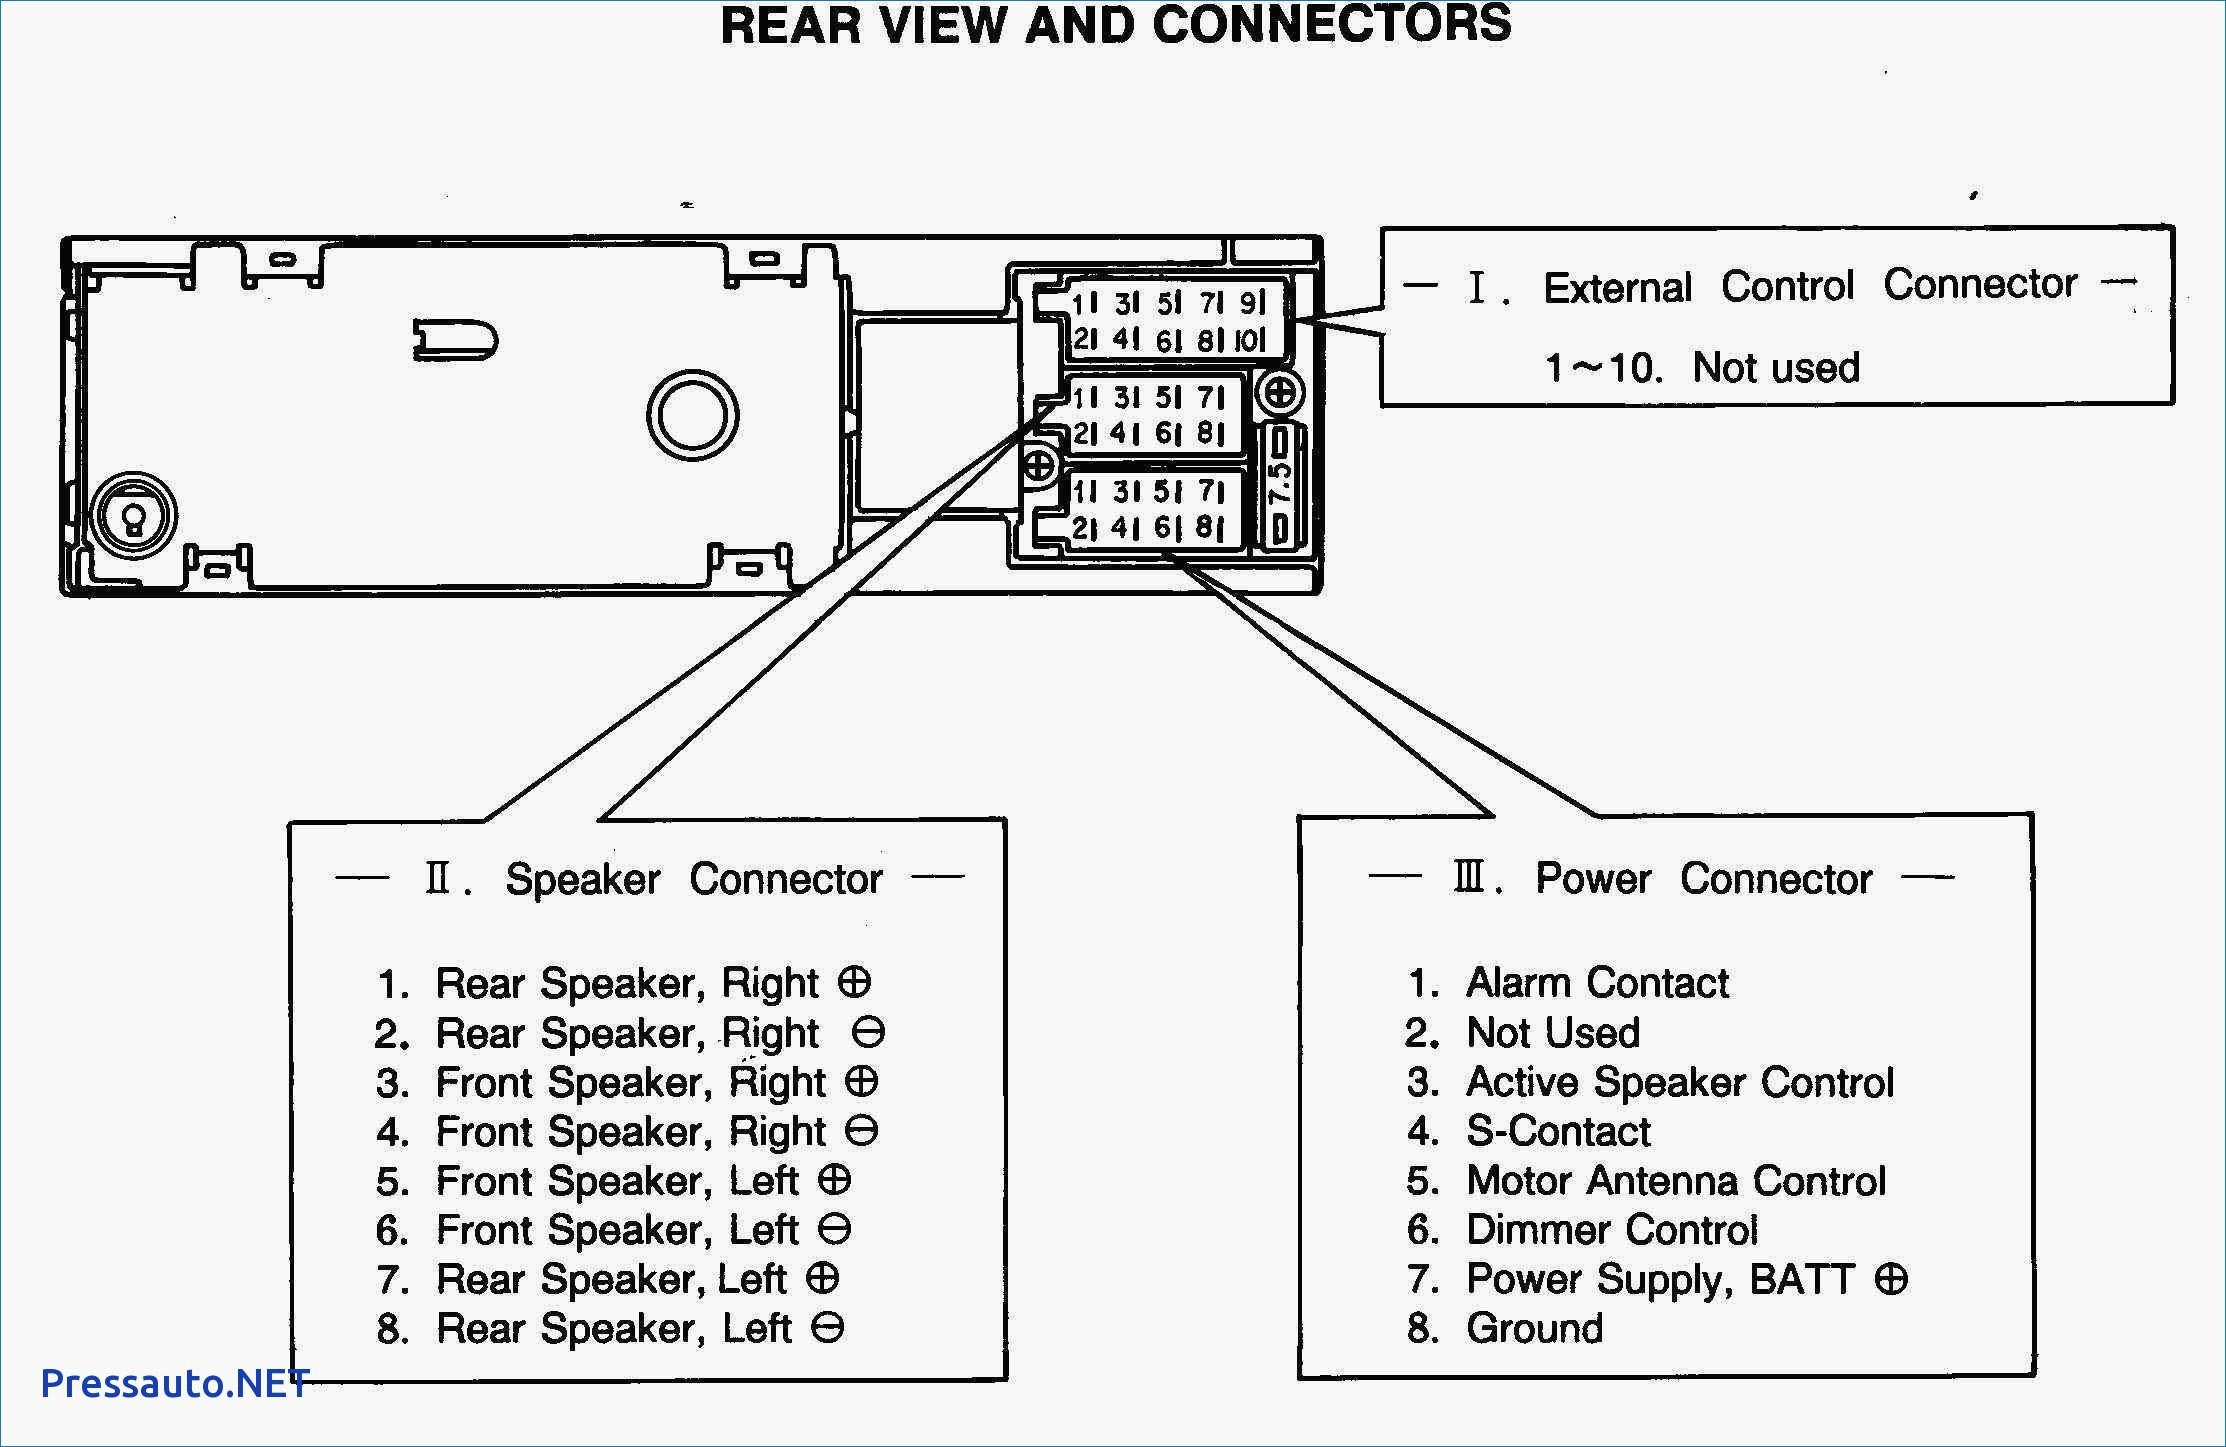 2000 Vw Jetta Stereo Wiring Diagram Beautiful aftermarket Radio Wiring Diagram Diagram Of 2000 Vw Jetta Stereo Wiring Diagram